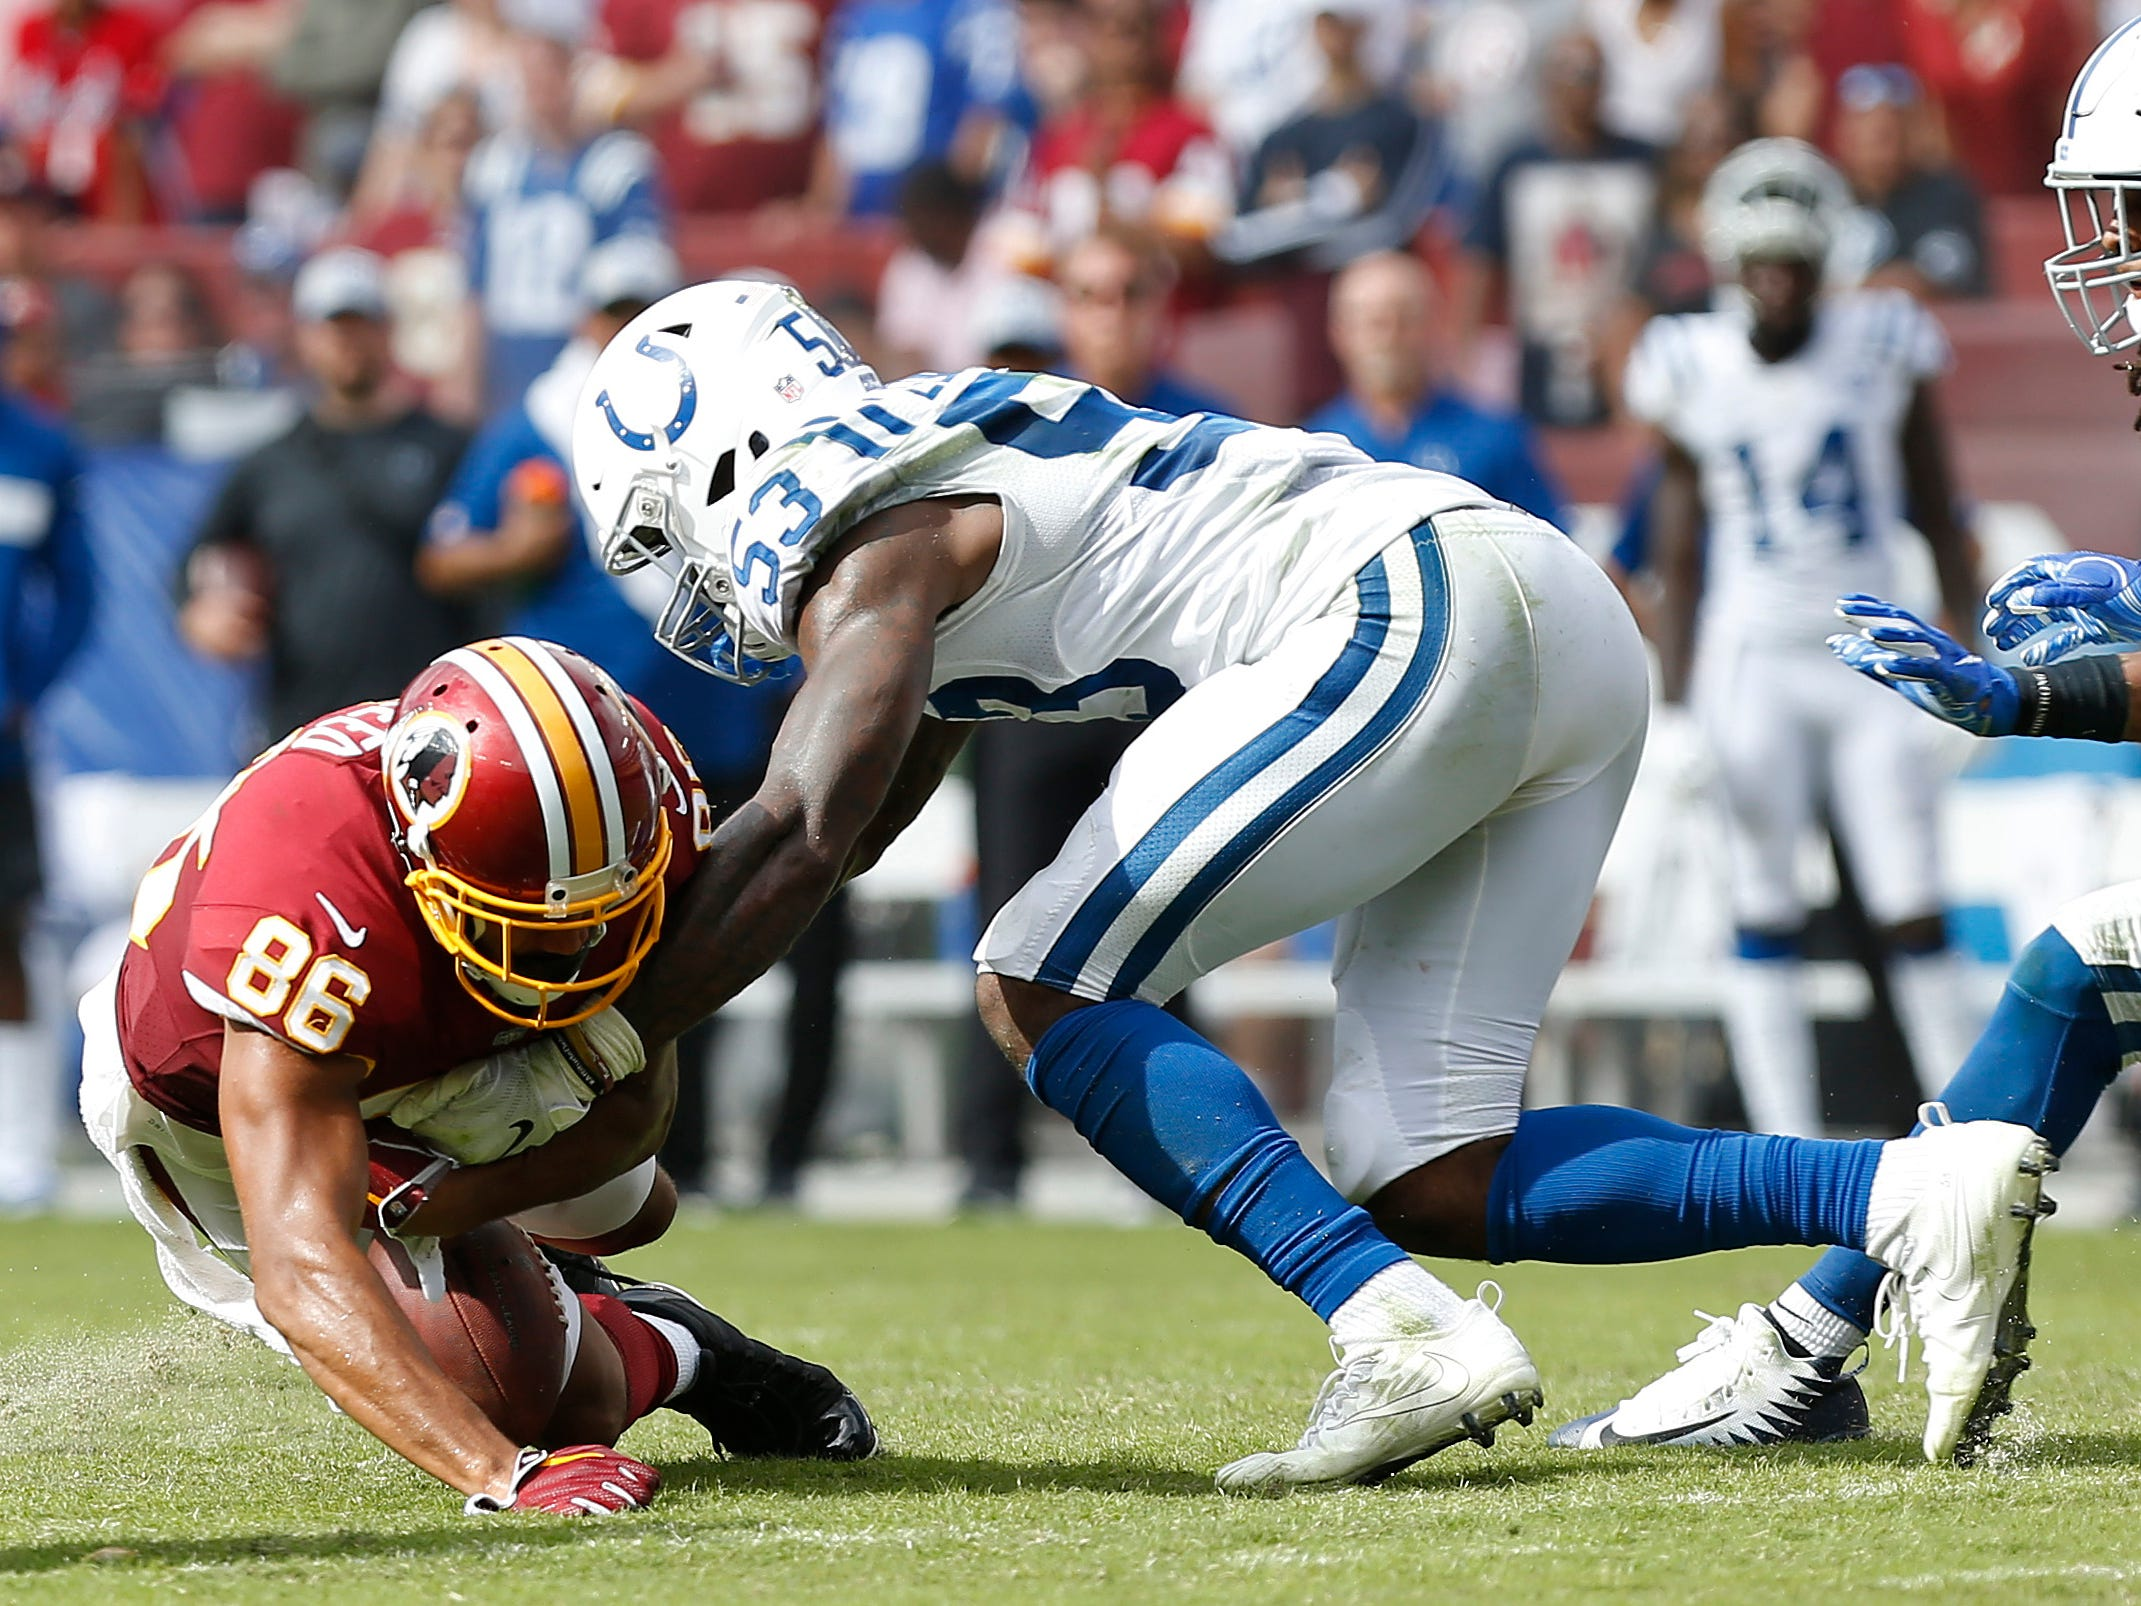 Here's another angle on that Jordan Reed fumble.